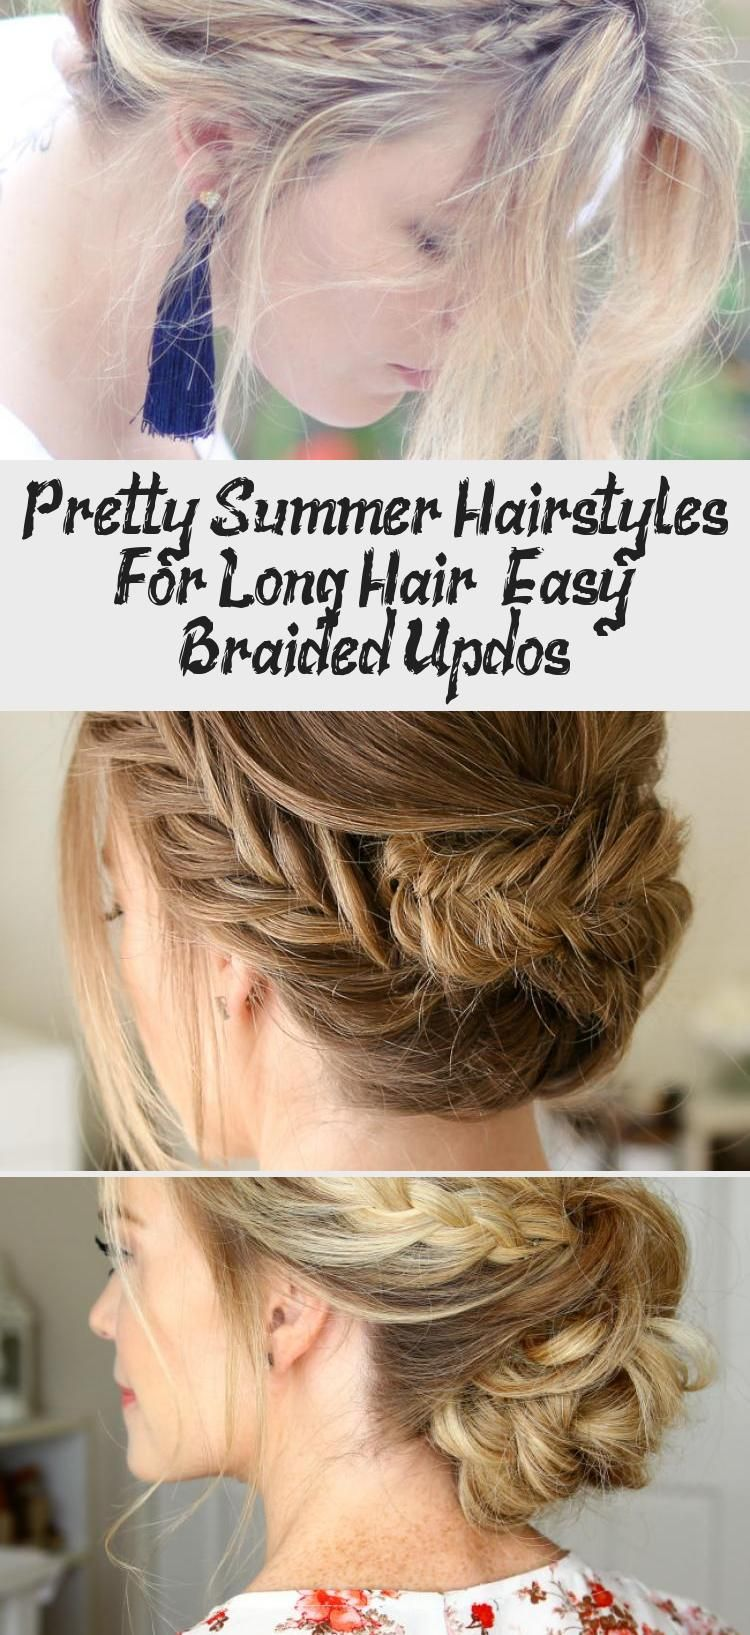 Pretty Summer Hairstyles For Long Hair Easy Braided Updos Summer Hairstyles Hair Styles Long Hair Styles